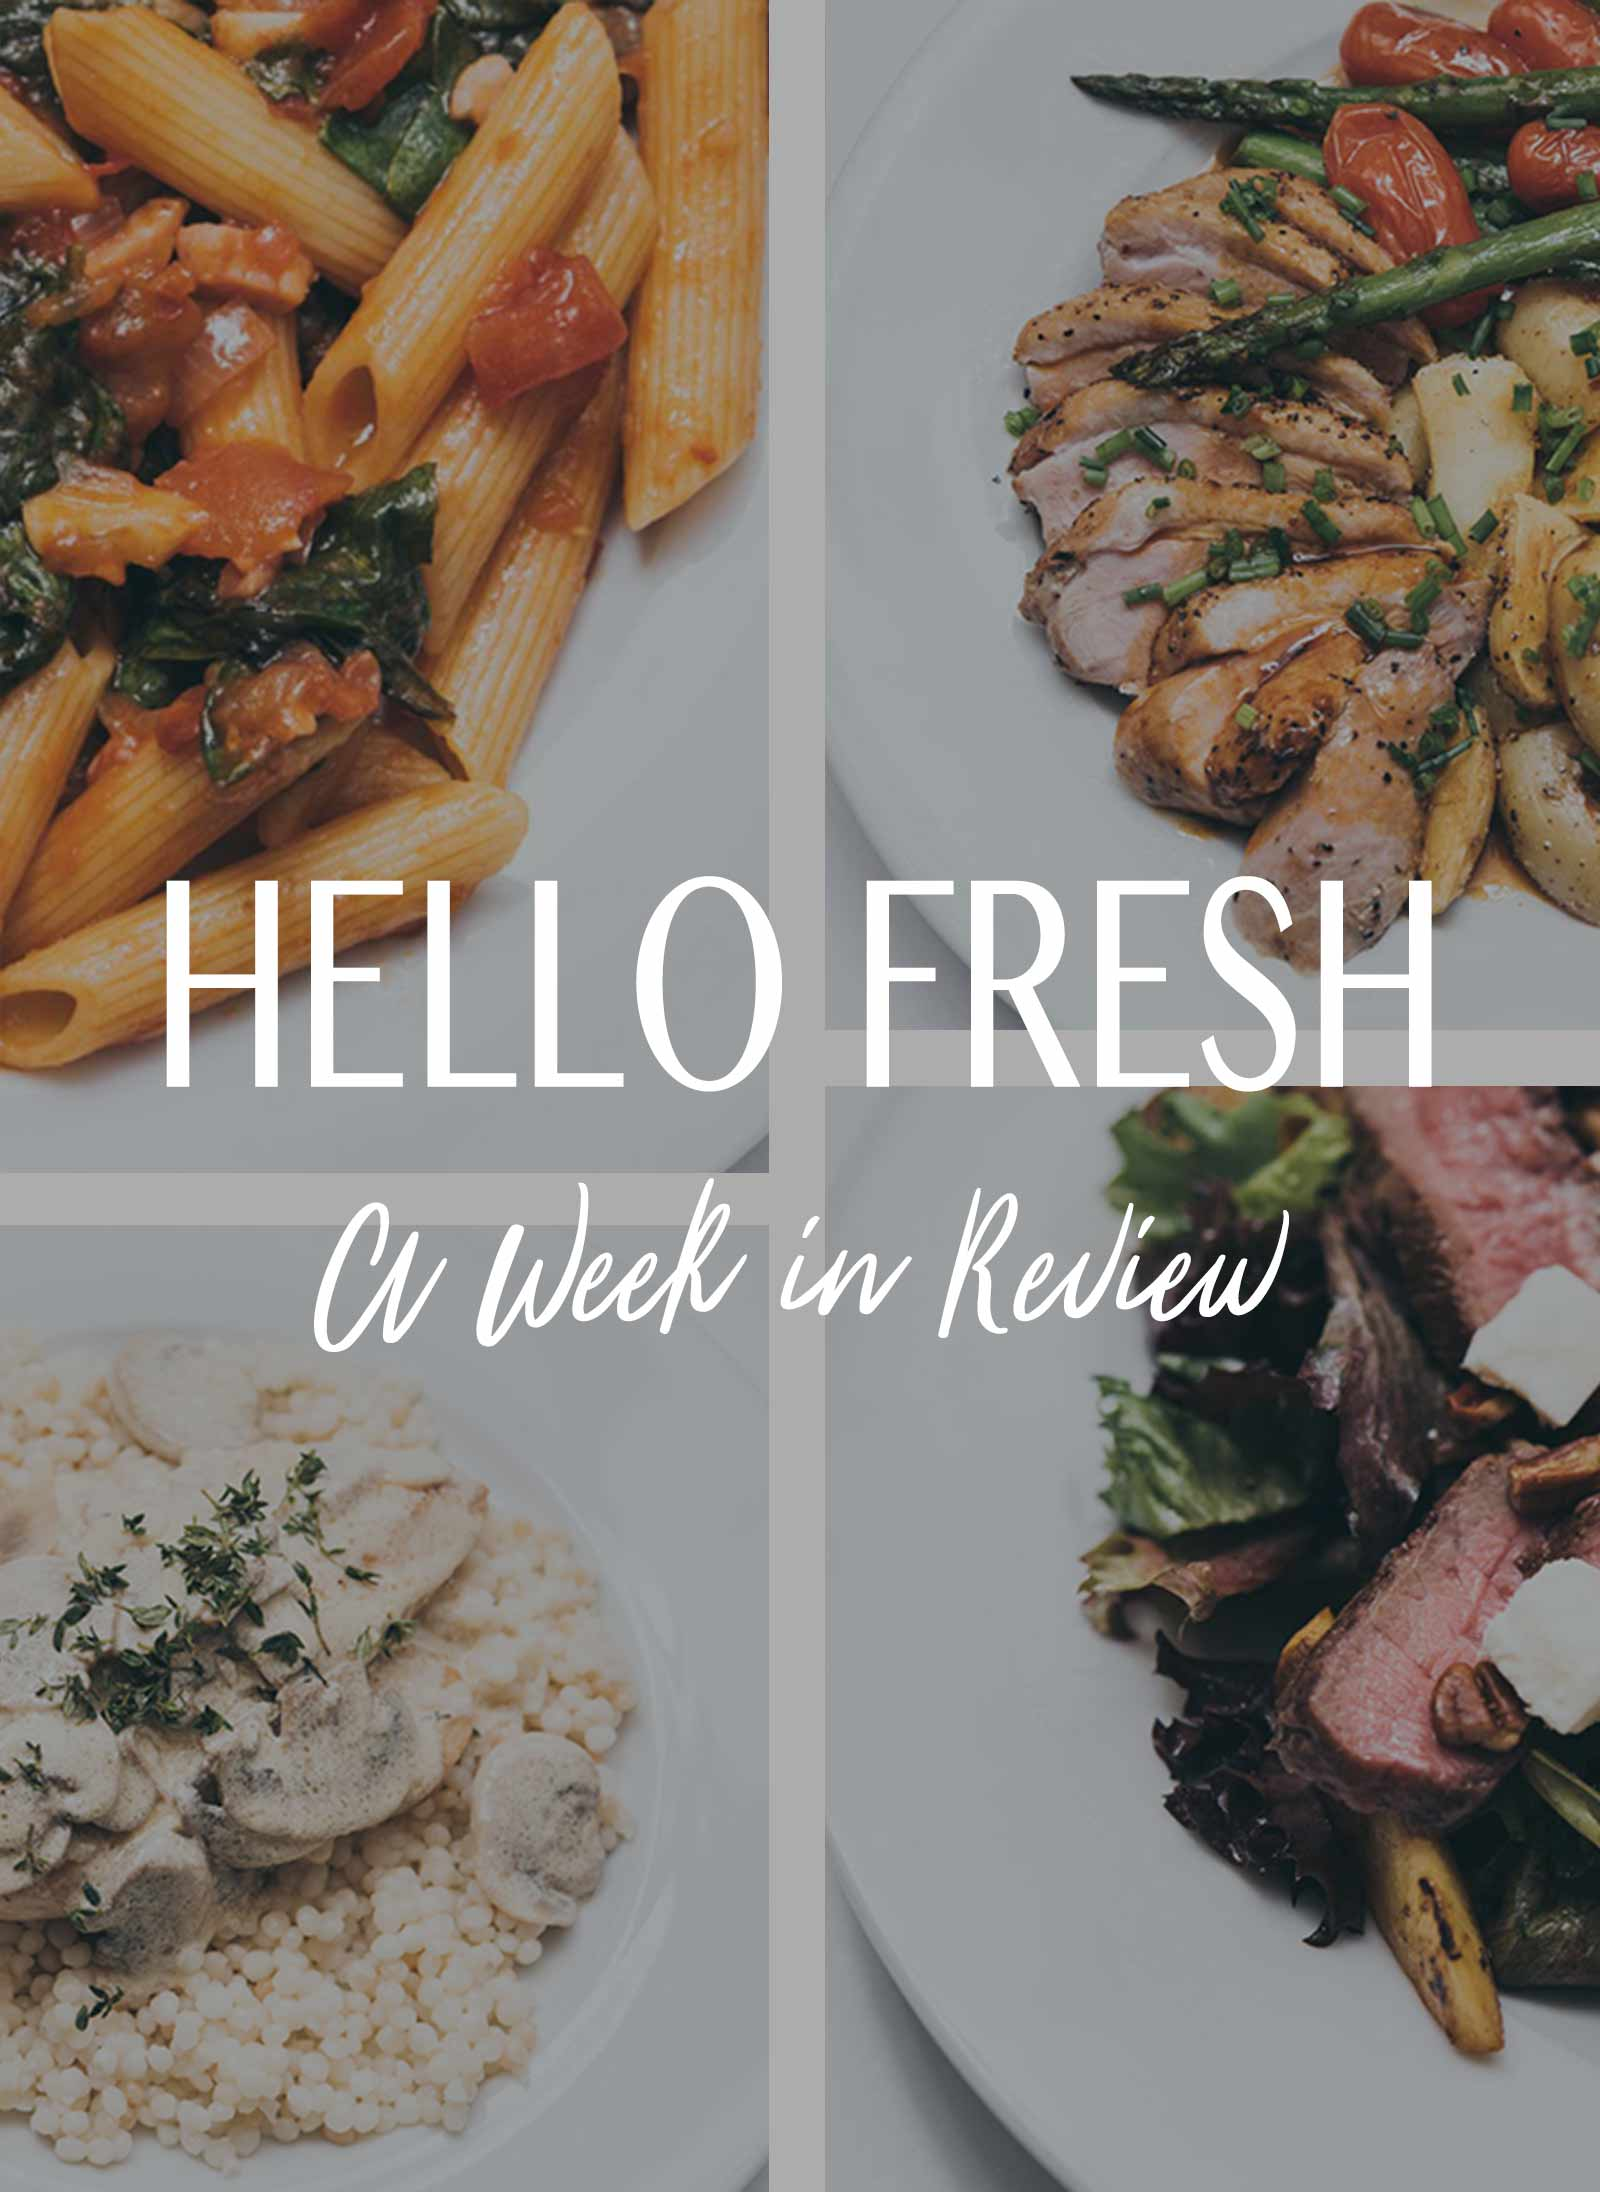 How To Enter  Hellofresh Meal Kit Delivery Service Coupon Code 2020